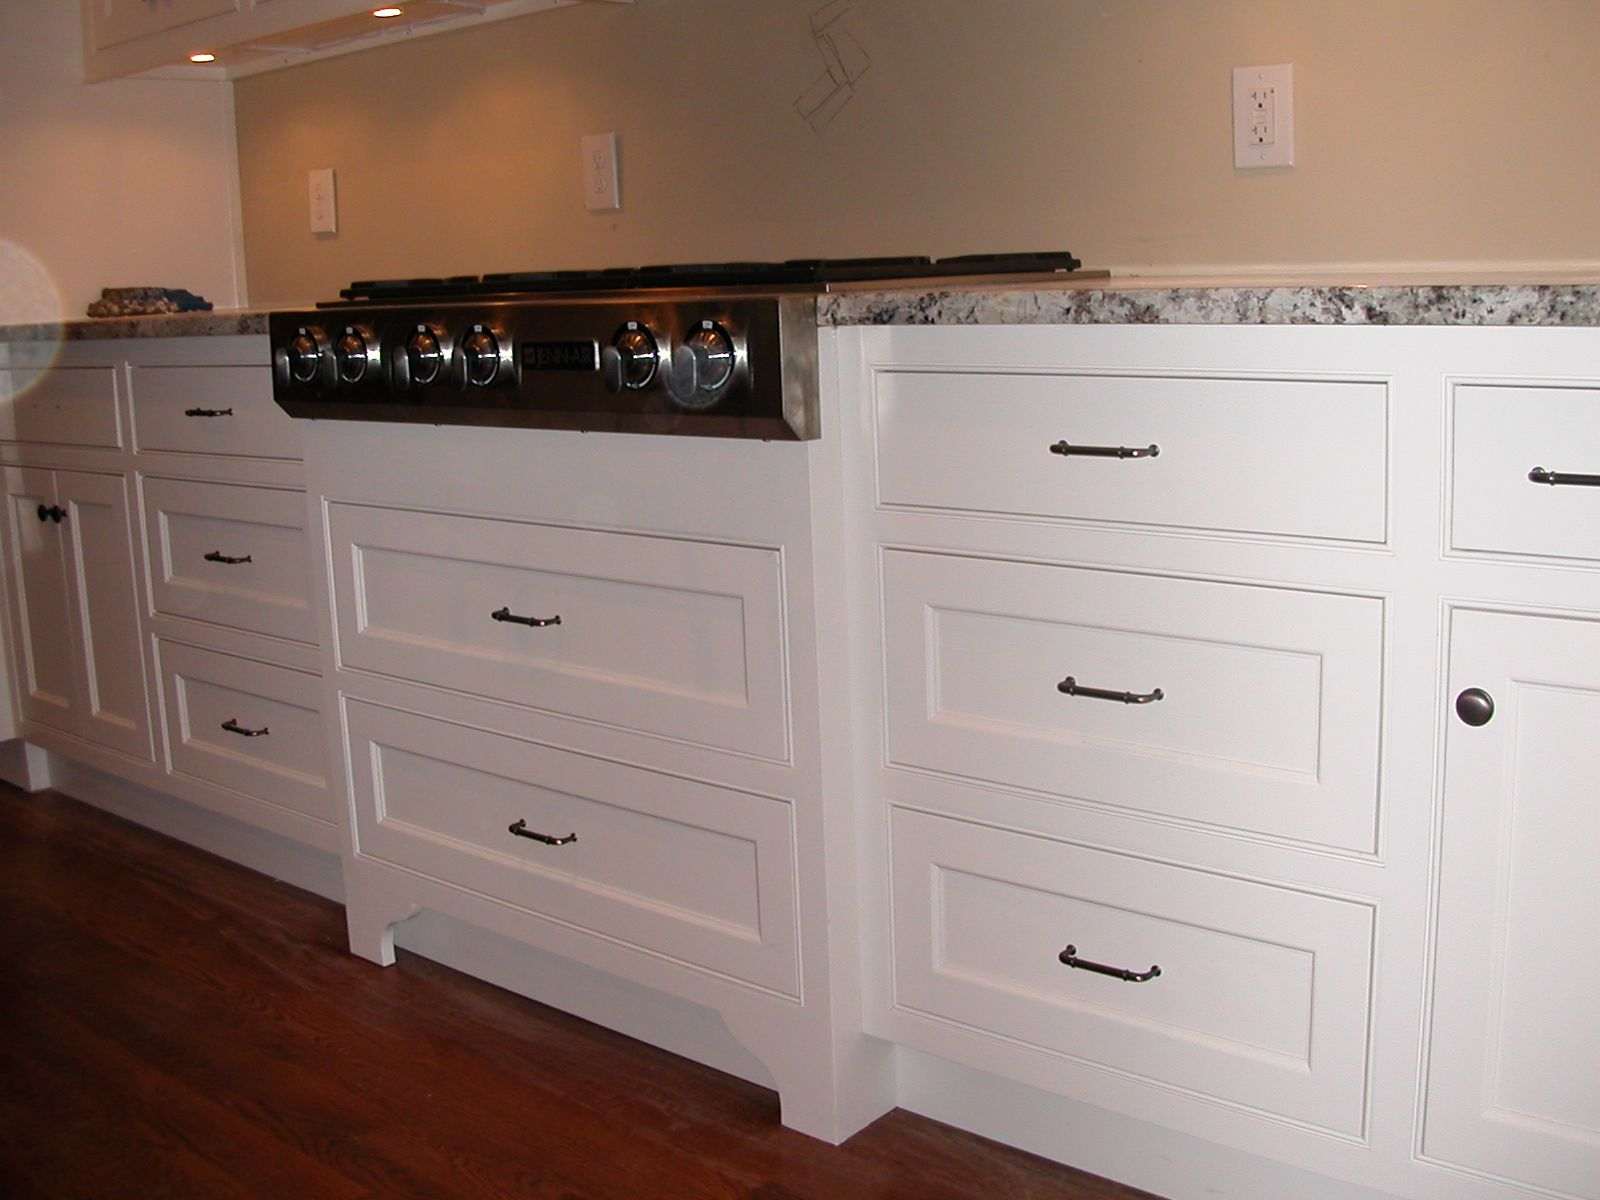 Http Woodworkdesignsbysteve Files Wordpress Com 2011 10 053 Jpg These C Shaker Style Kitchen Cabinets Kitchen Cabinet Door Styles Shaker Style Cabinet Doors